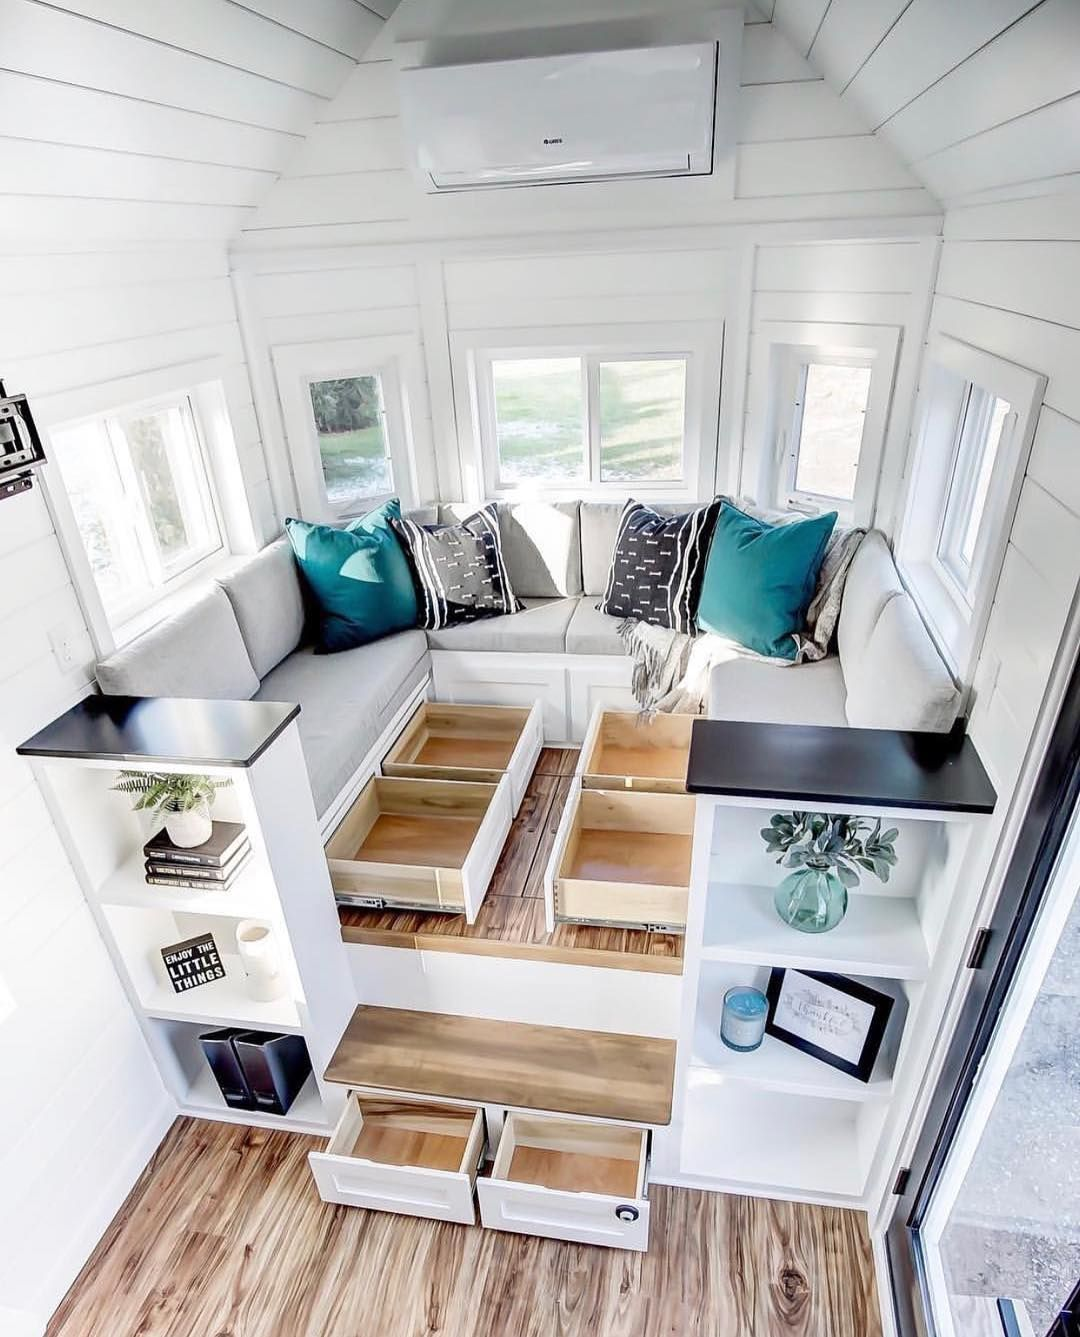 Start Using These Interior Decor Tips To Brighten Up Your Home And Give It New Life Home Designi Tiny House Plans Tiny House Interior Design Tiny House Design